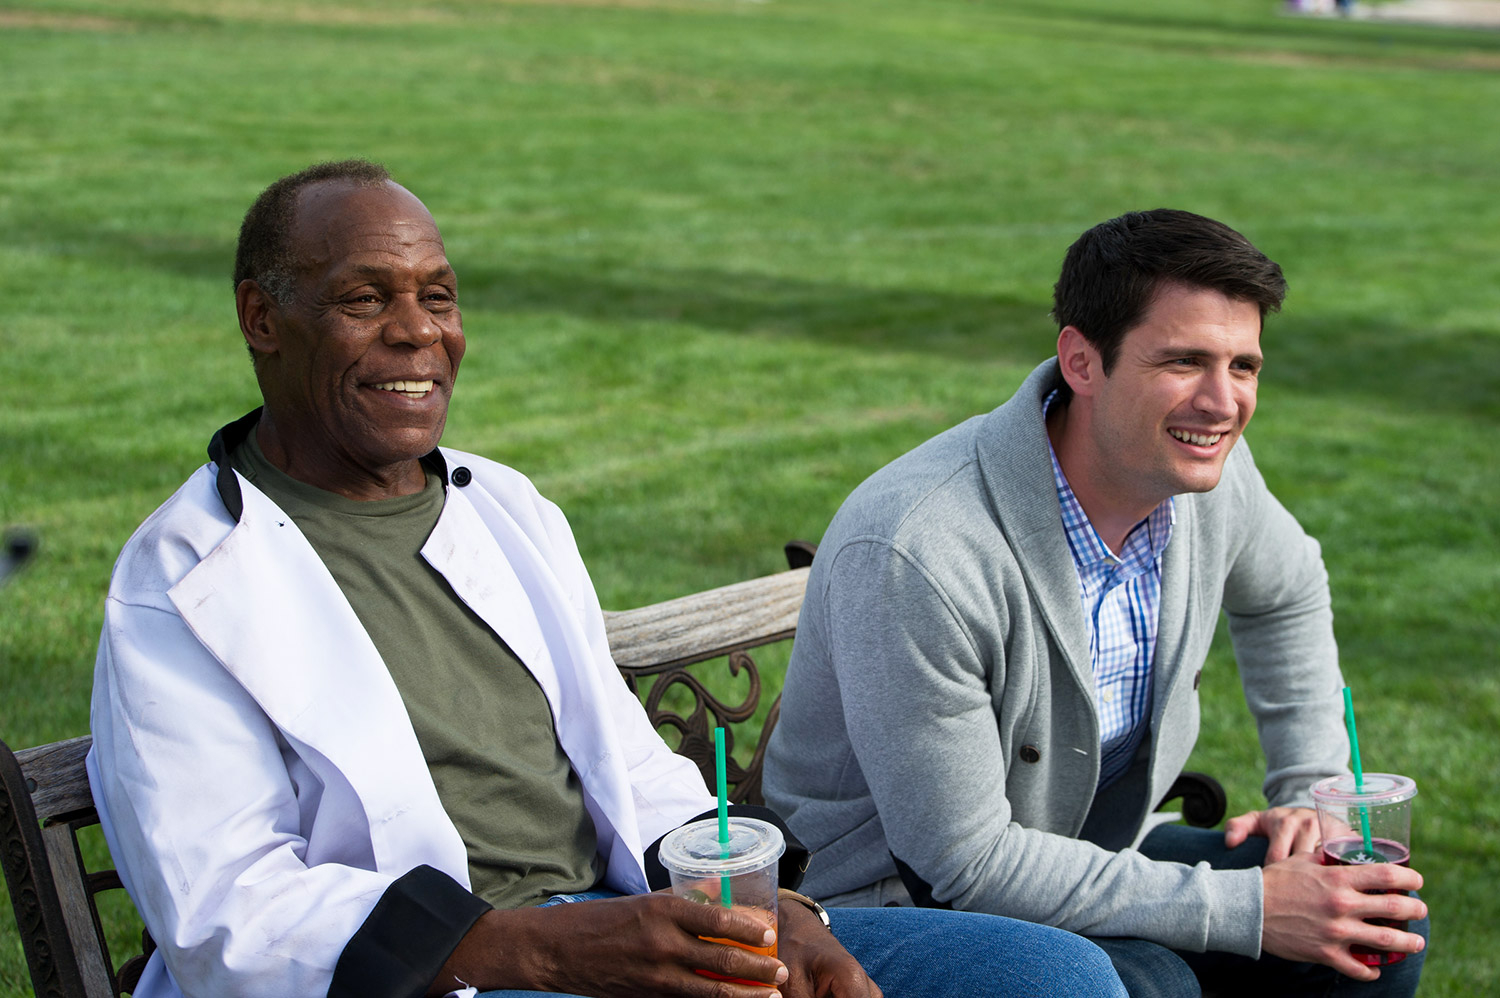 Danny Glover and James Lafferty